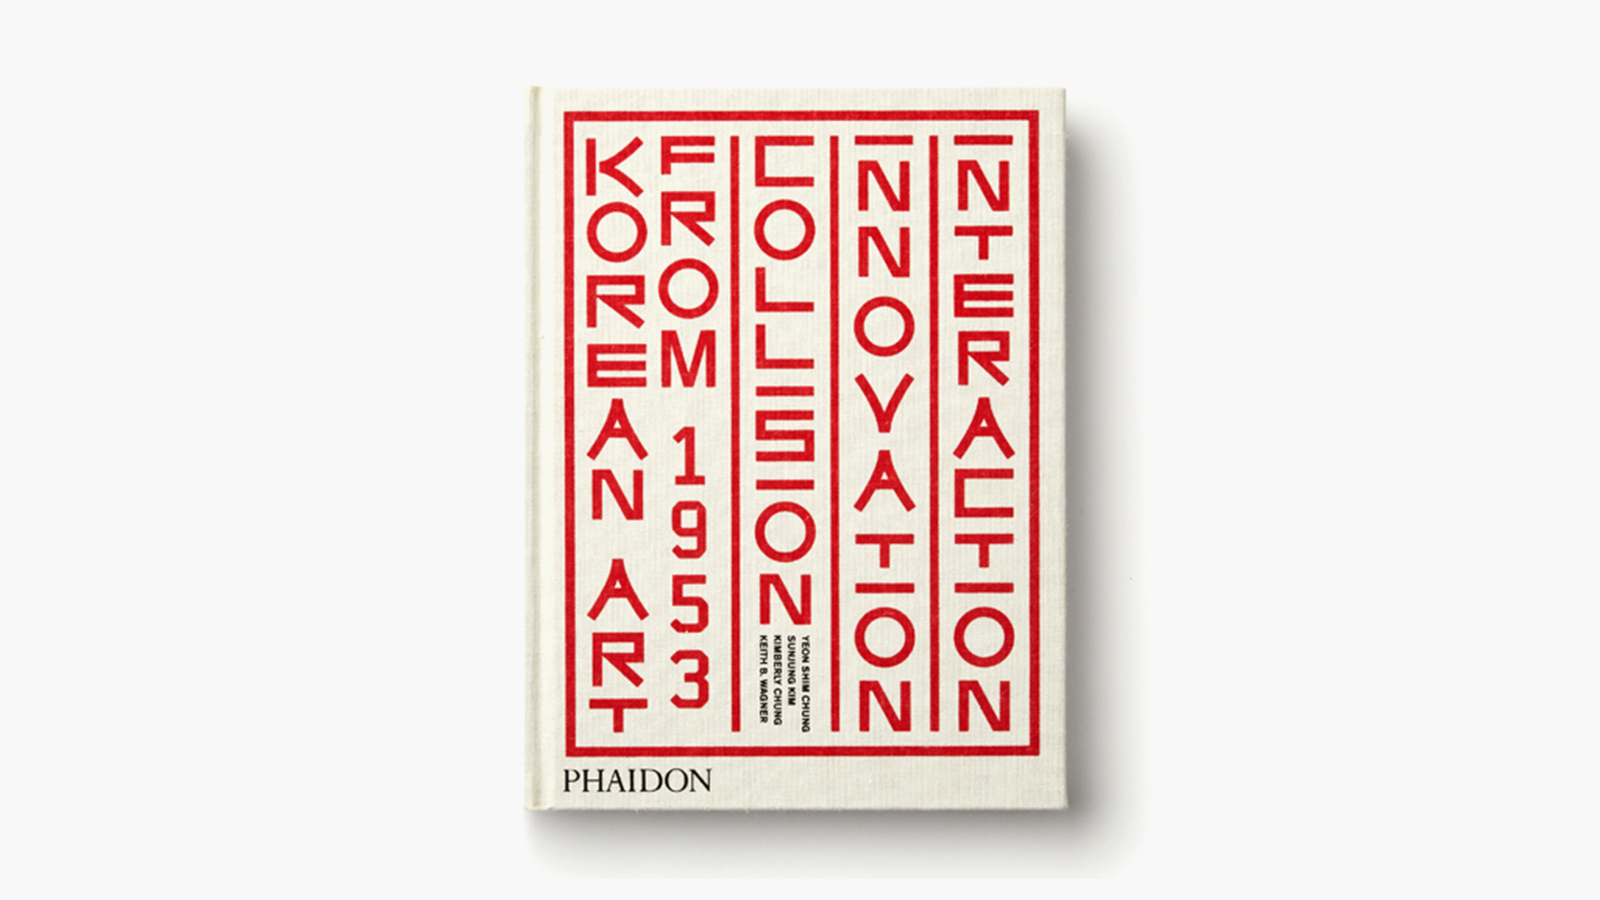 'Korean Art from 1953: Collision, Innovation, Interaction' by Yeon Shim Chung, Sunjung Kim, Kimberly Chung & Keith B. Wagner